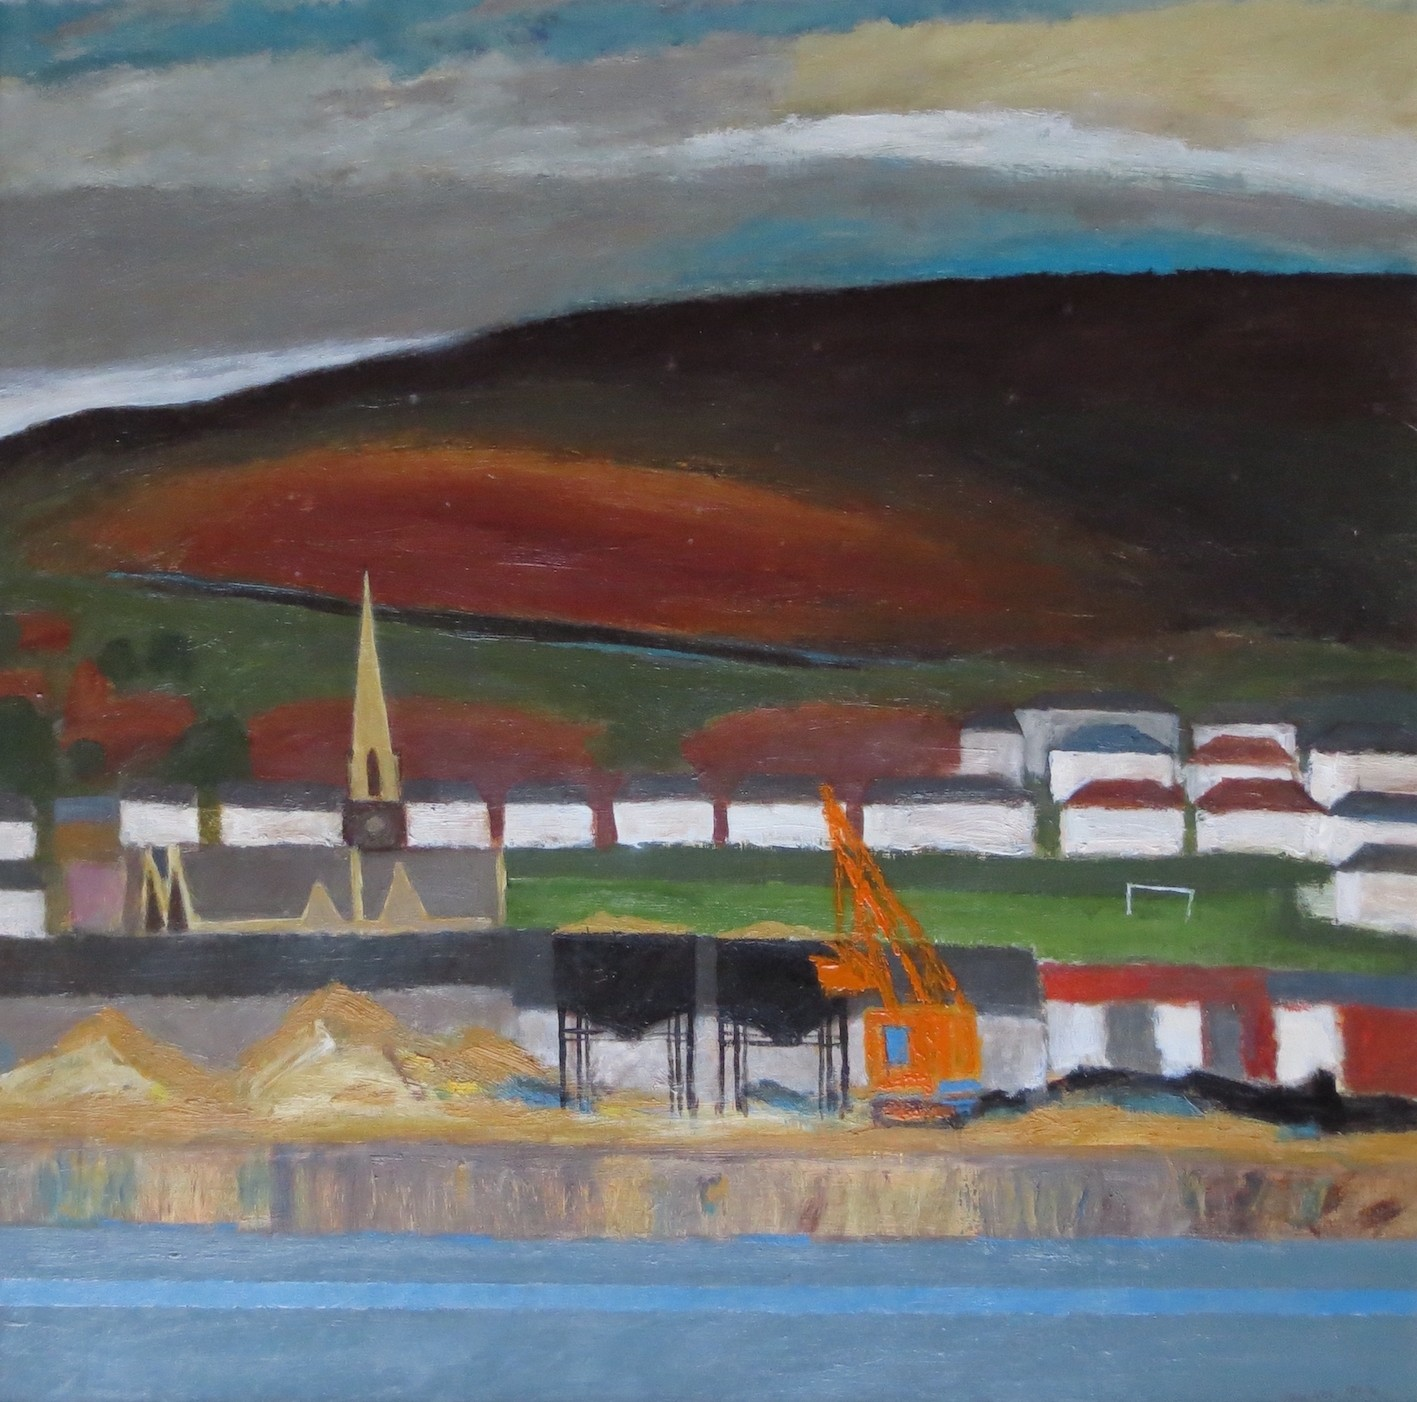 4.Kilvey Hill No.2 (59 x 59 cm) Oil